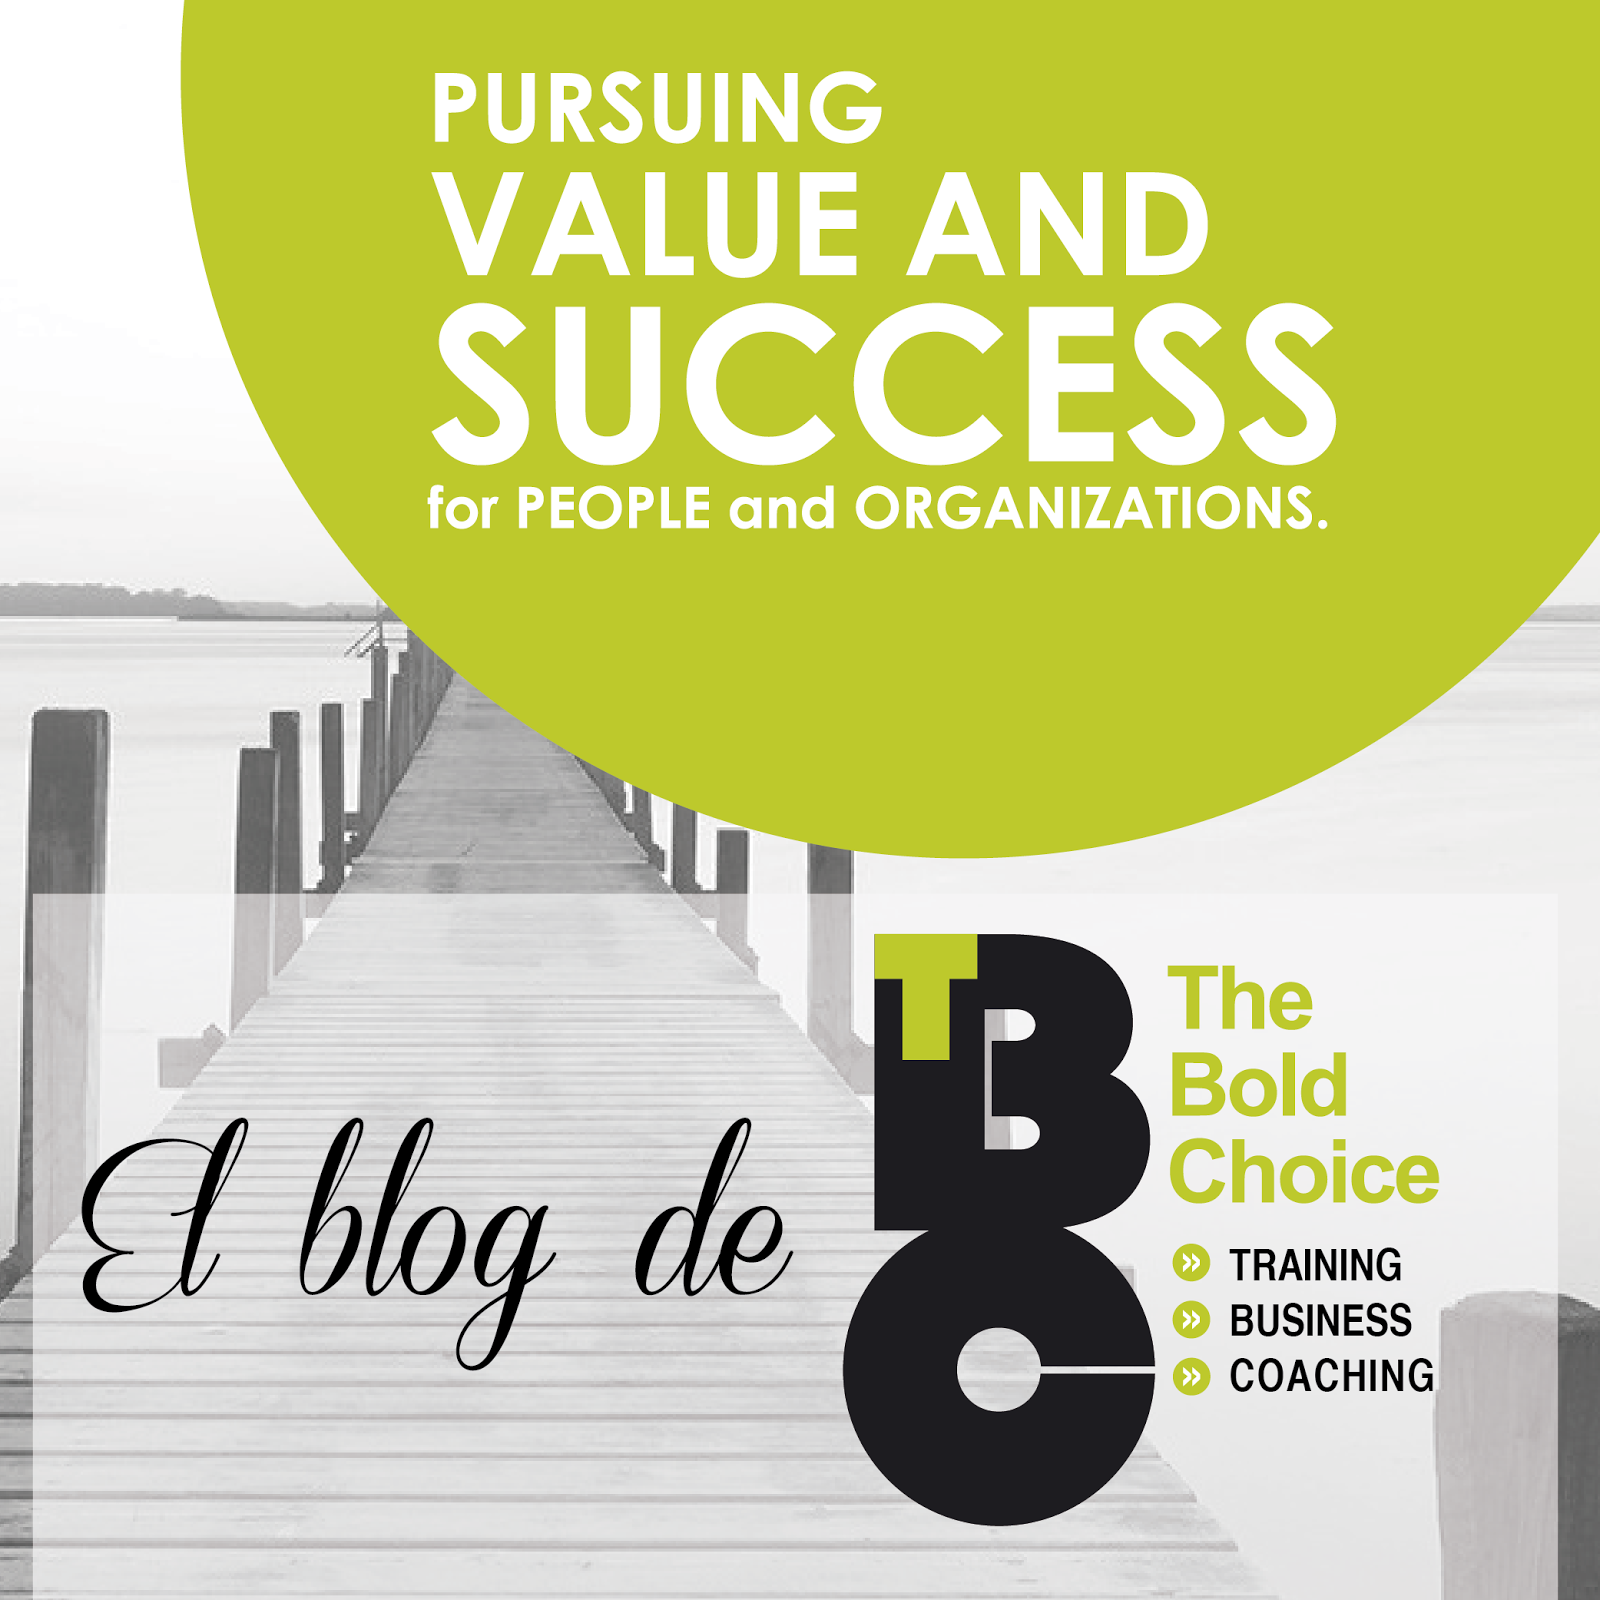 El blog de The Bold Choice